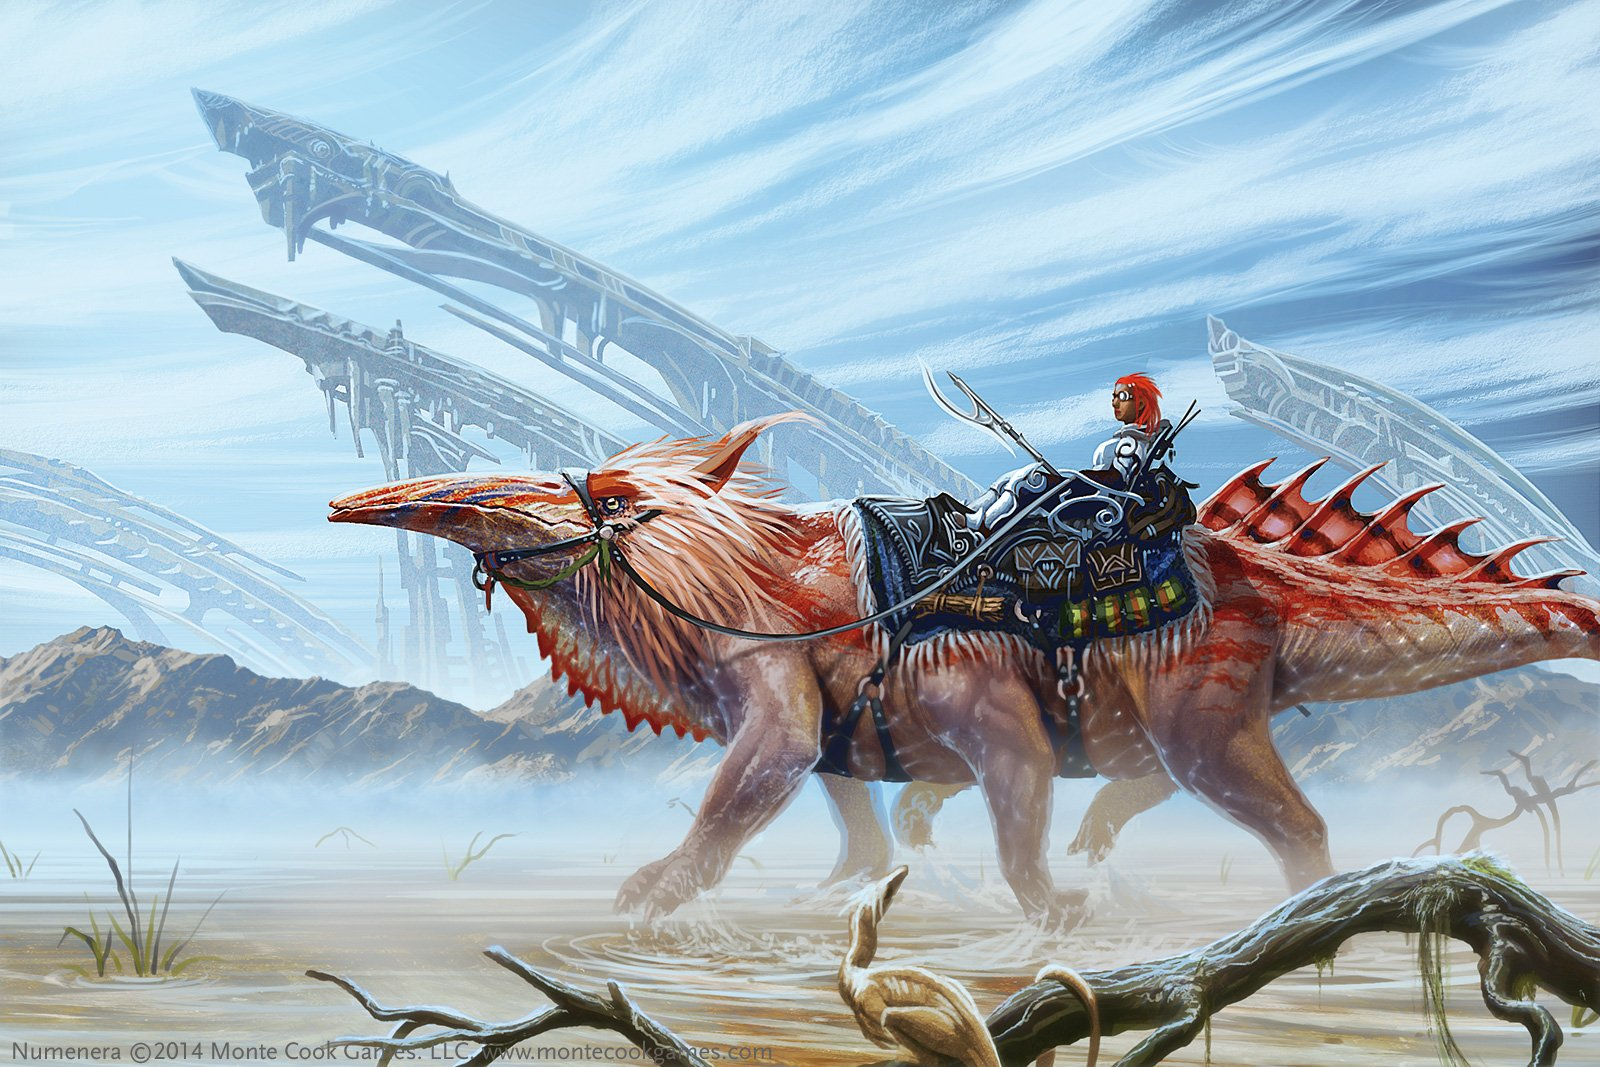 Monte Cook Games is bringing Numenera to Dungeons and Dragons